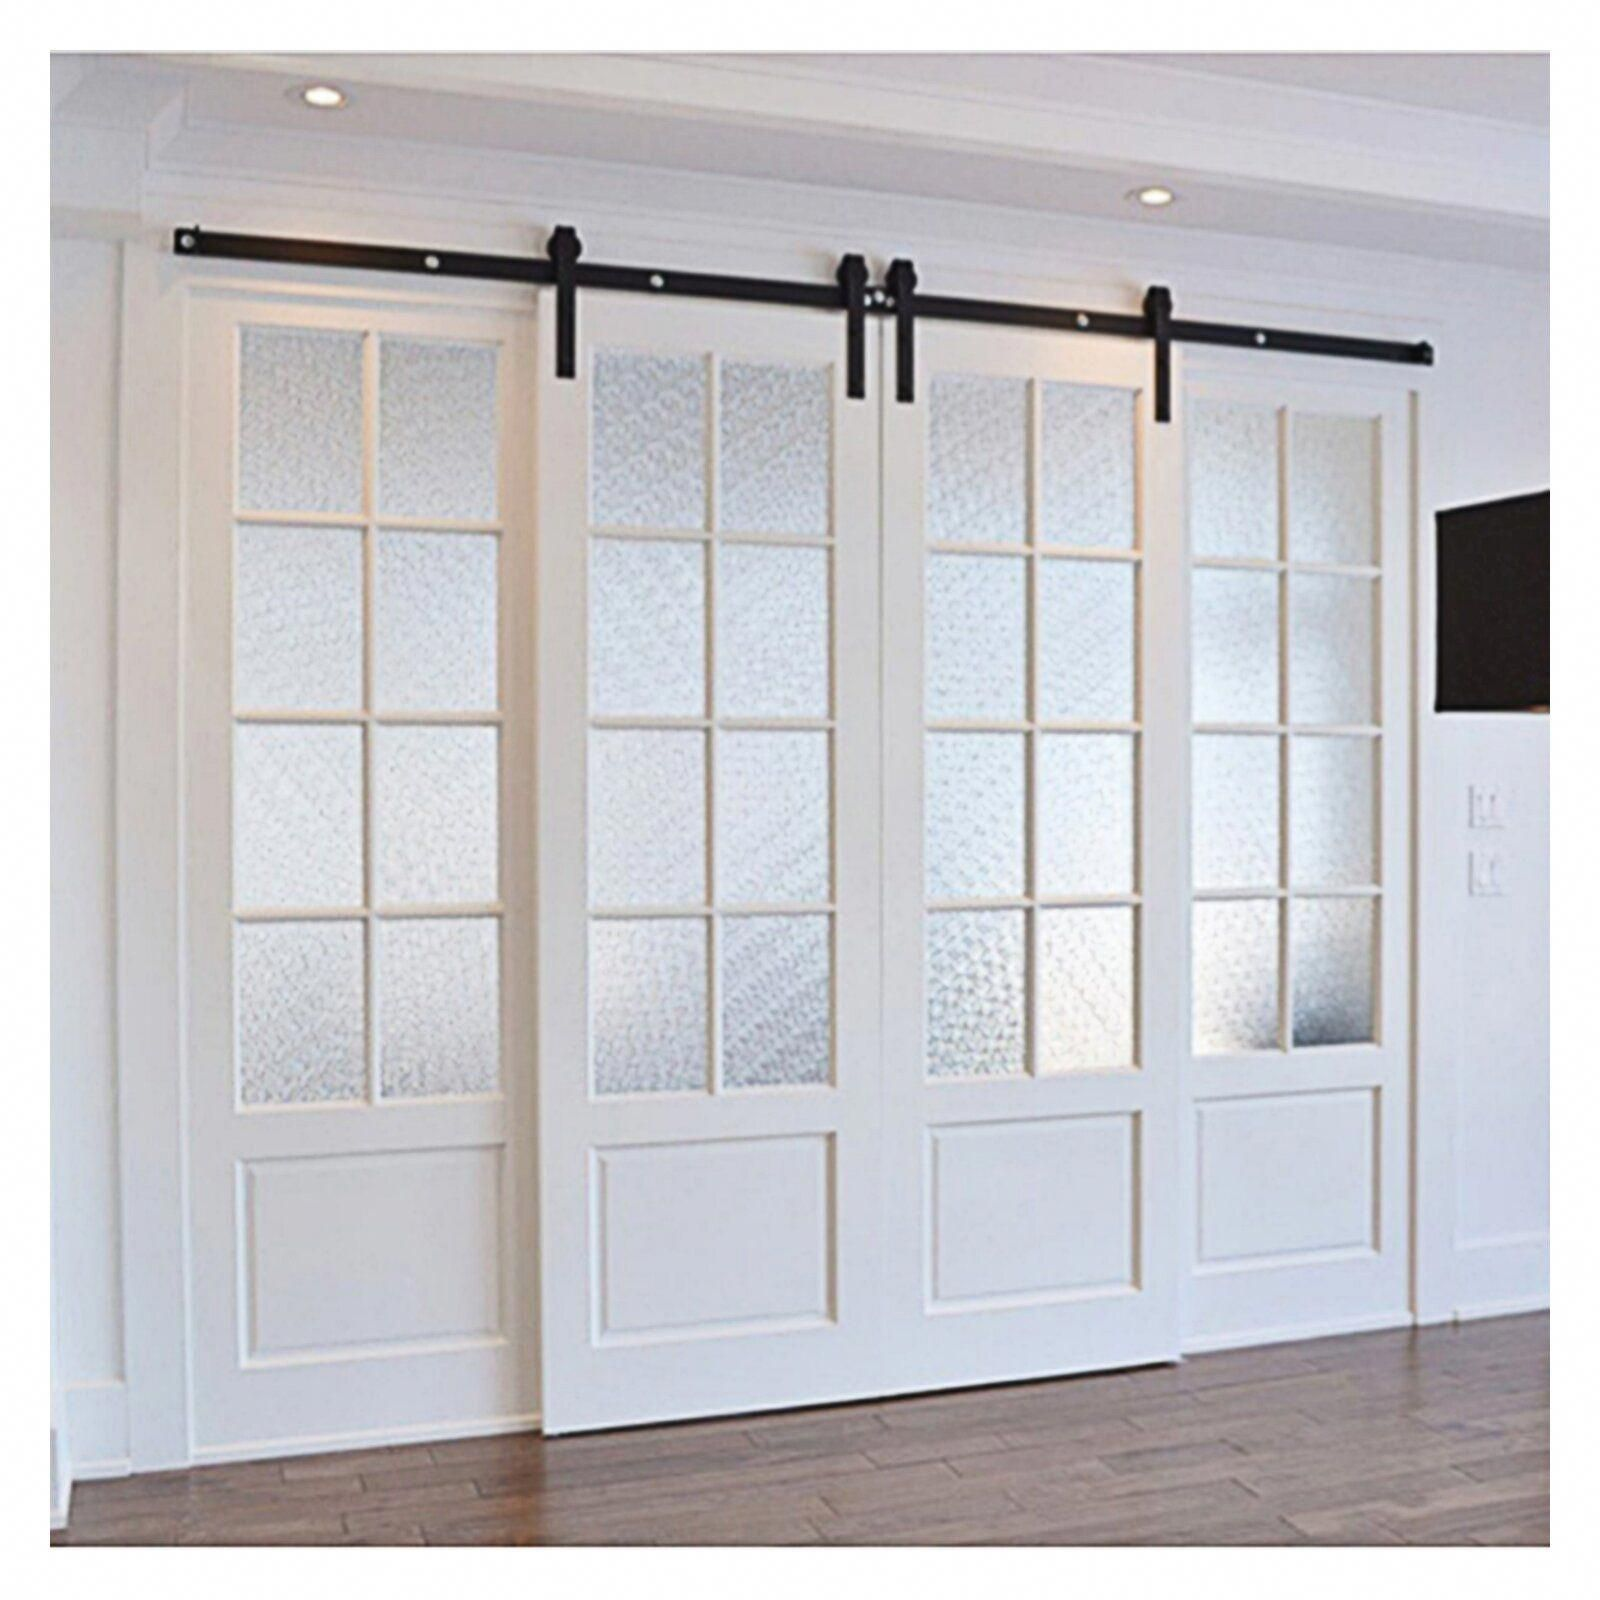 Inspiring Concepts That We Take Great Delight In Doubleslidinginteriorbarndoors French Doors Interior Double Sliding Barn Doors Barn Door Window